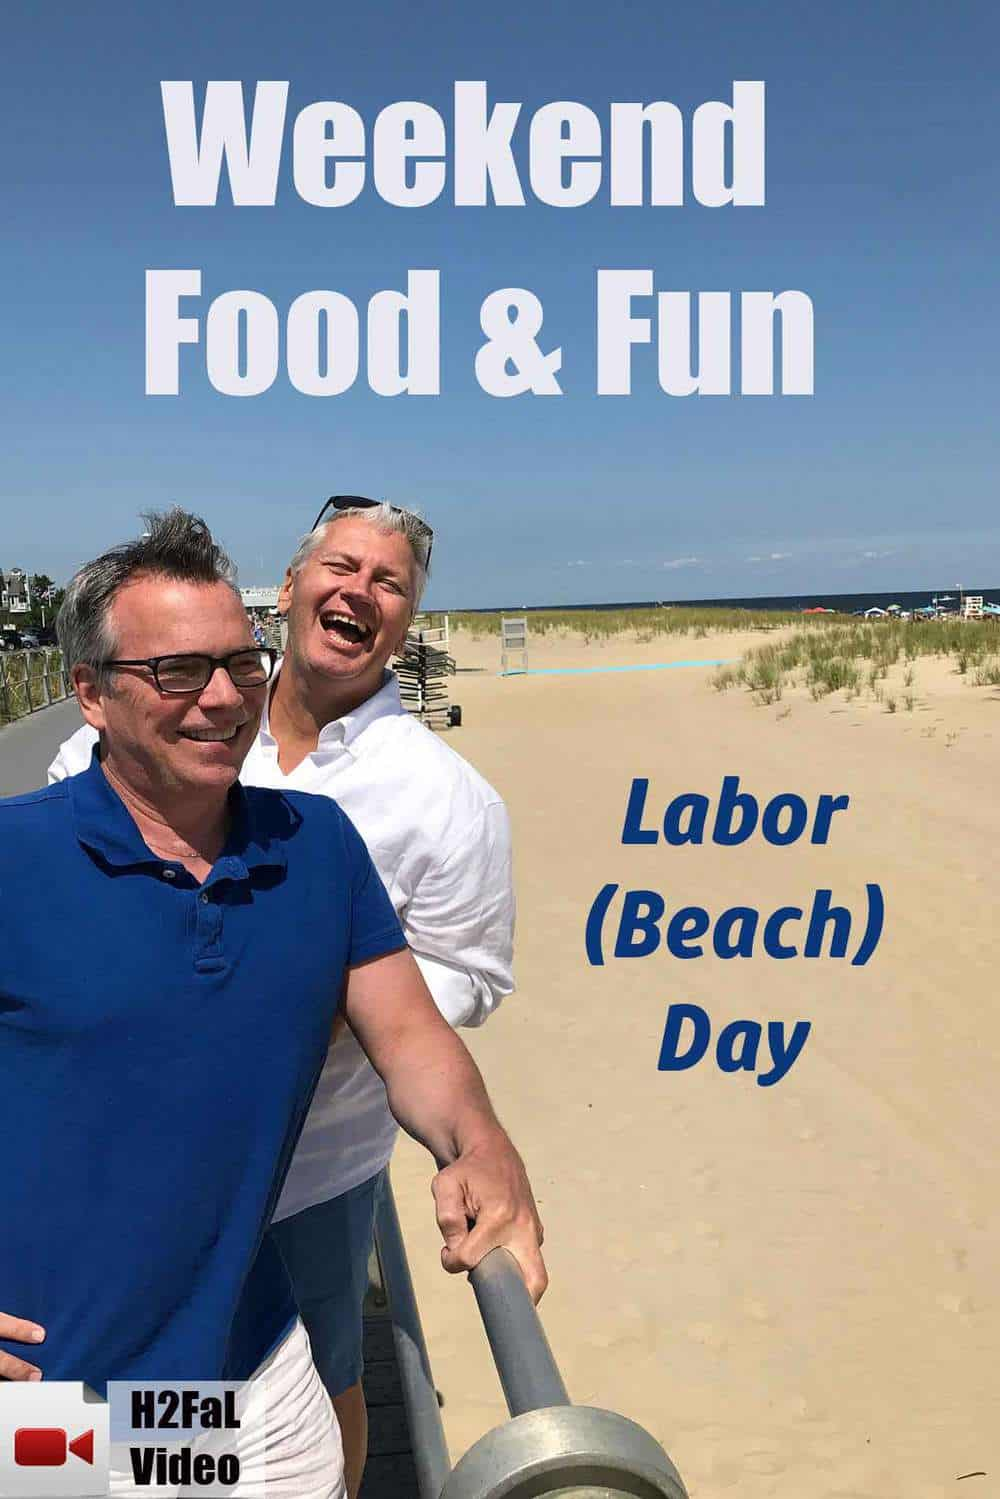 Weekend Food & Fun: Labor (Beach) Day